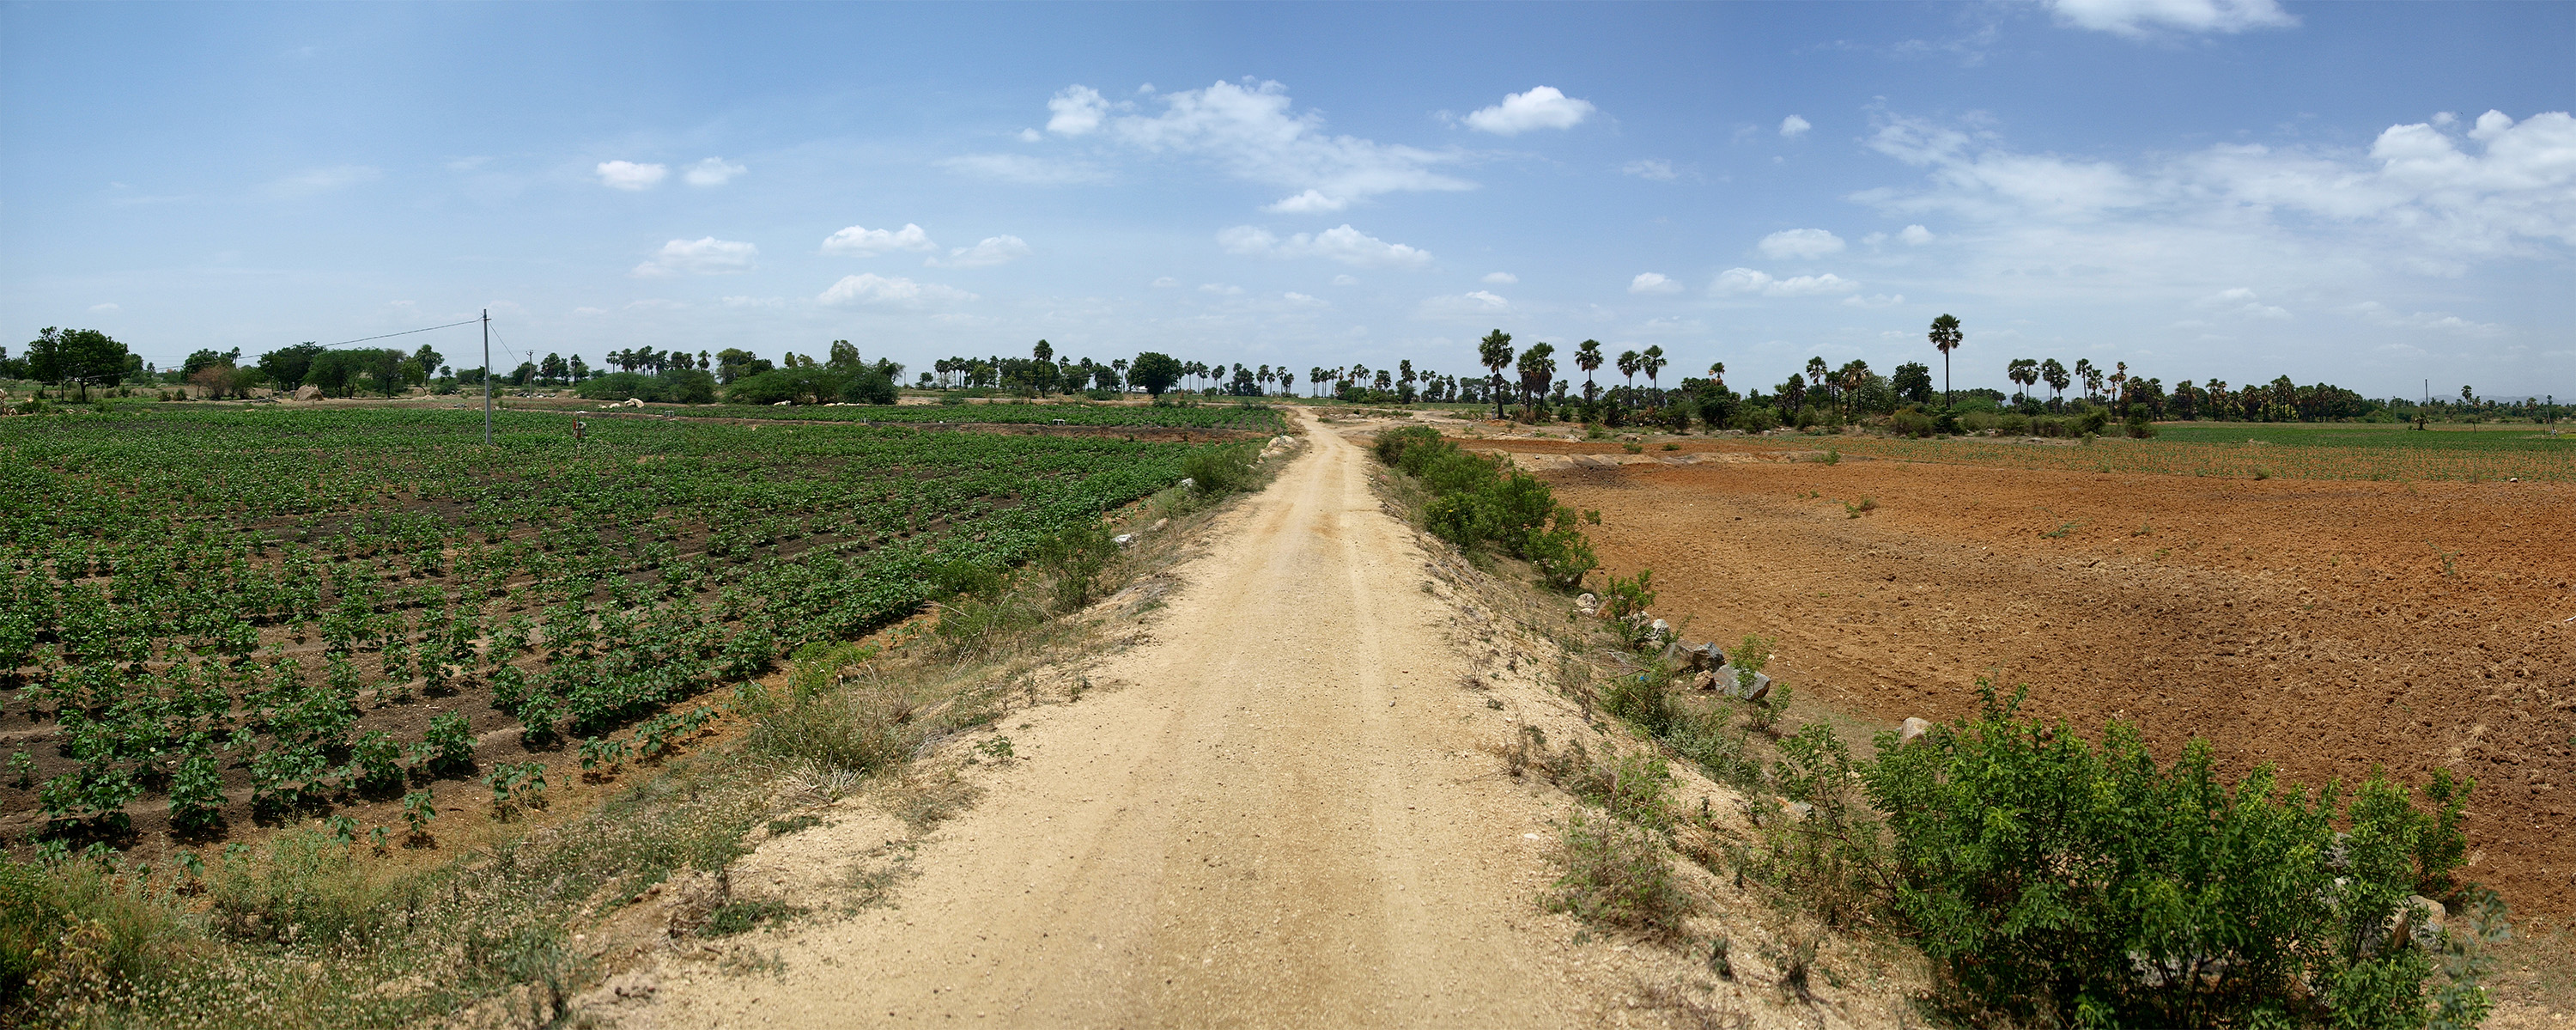 The farm field on the left has been treated with silt. Image credit: John Monnat